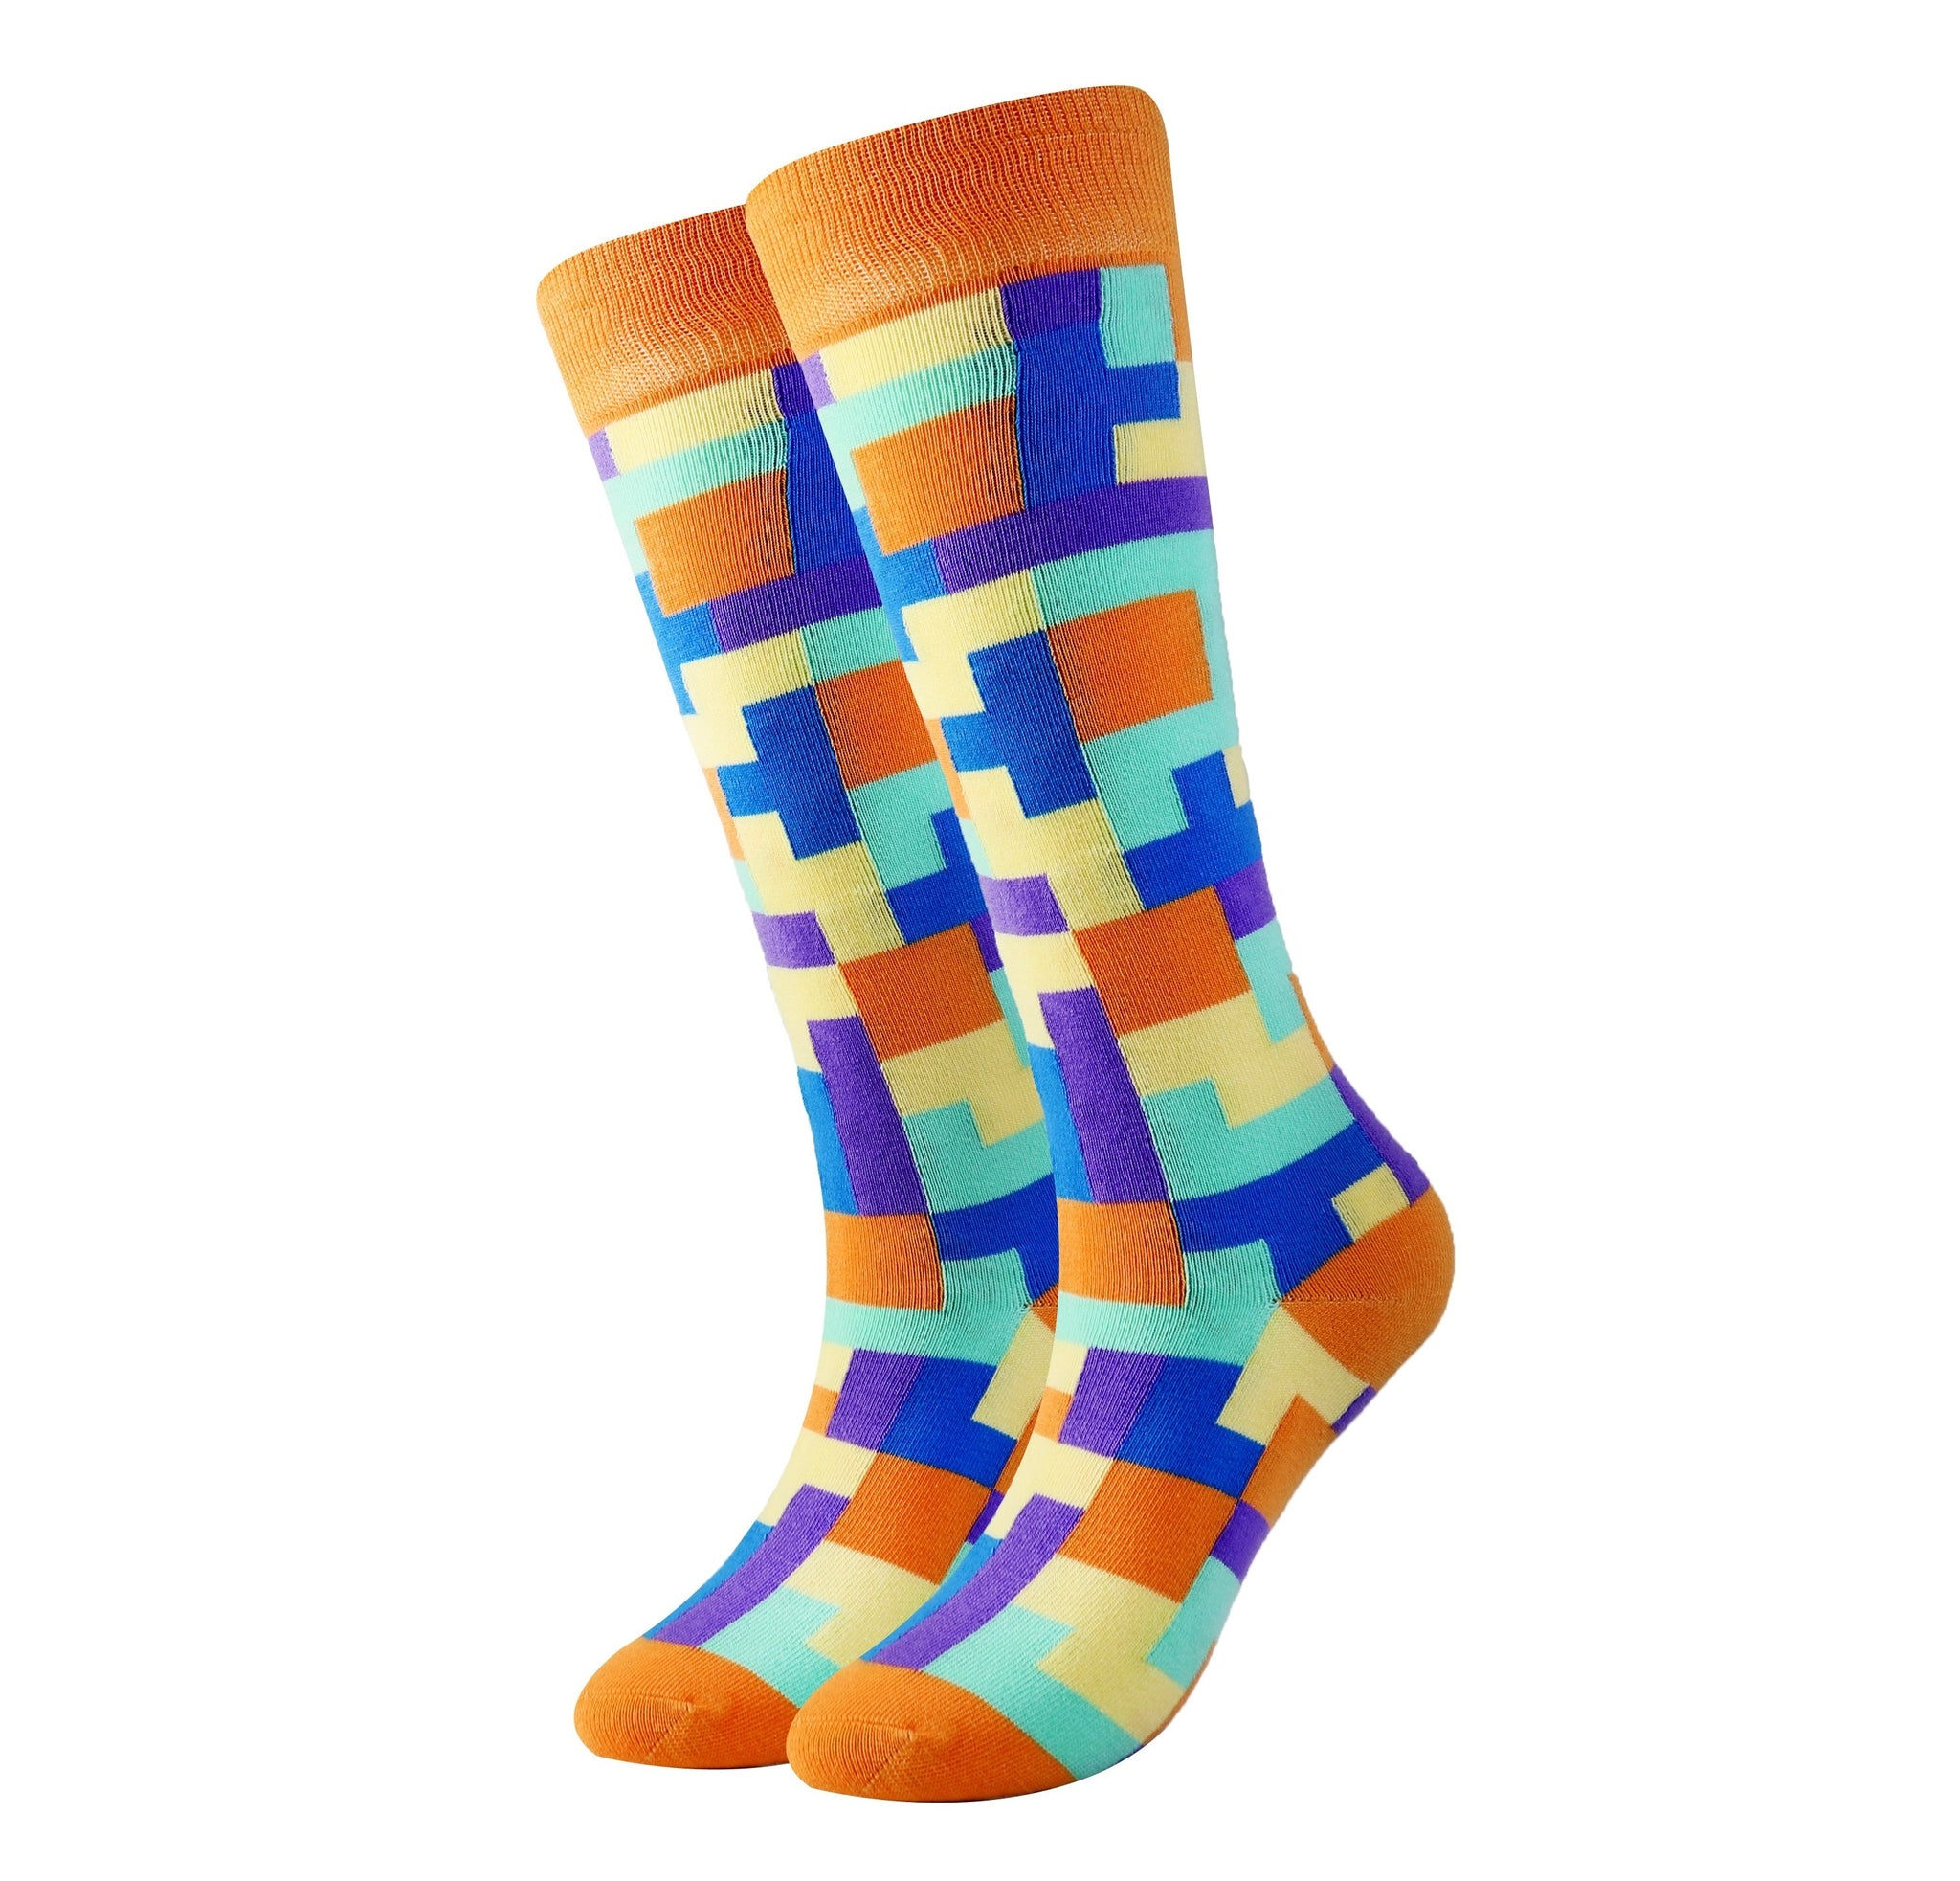 Tetris Socks (Small)